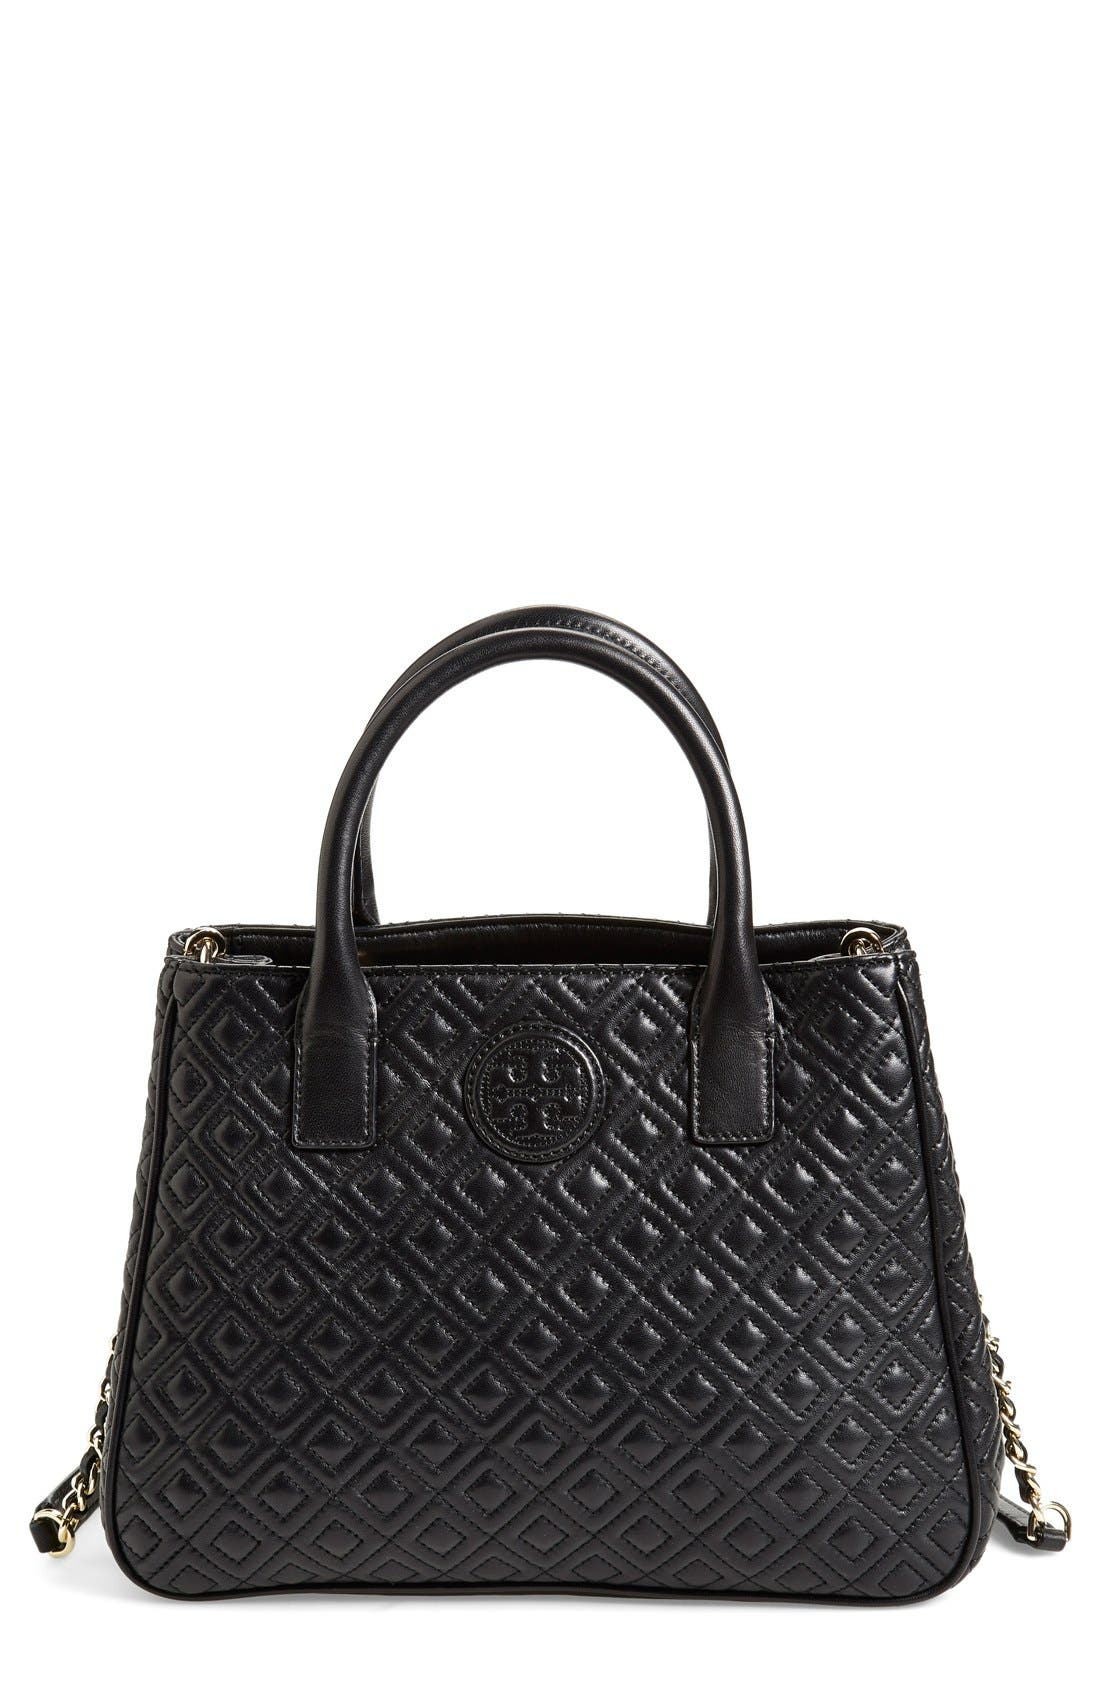 TORY BURCH, Marion Quilted Lambskin Tote, Main thumbnail 1, color, 001